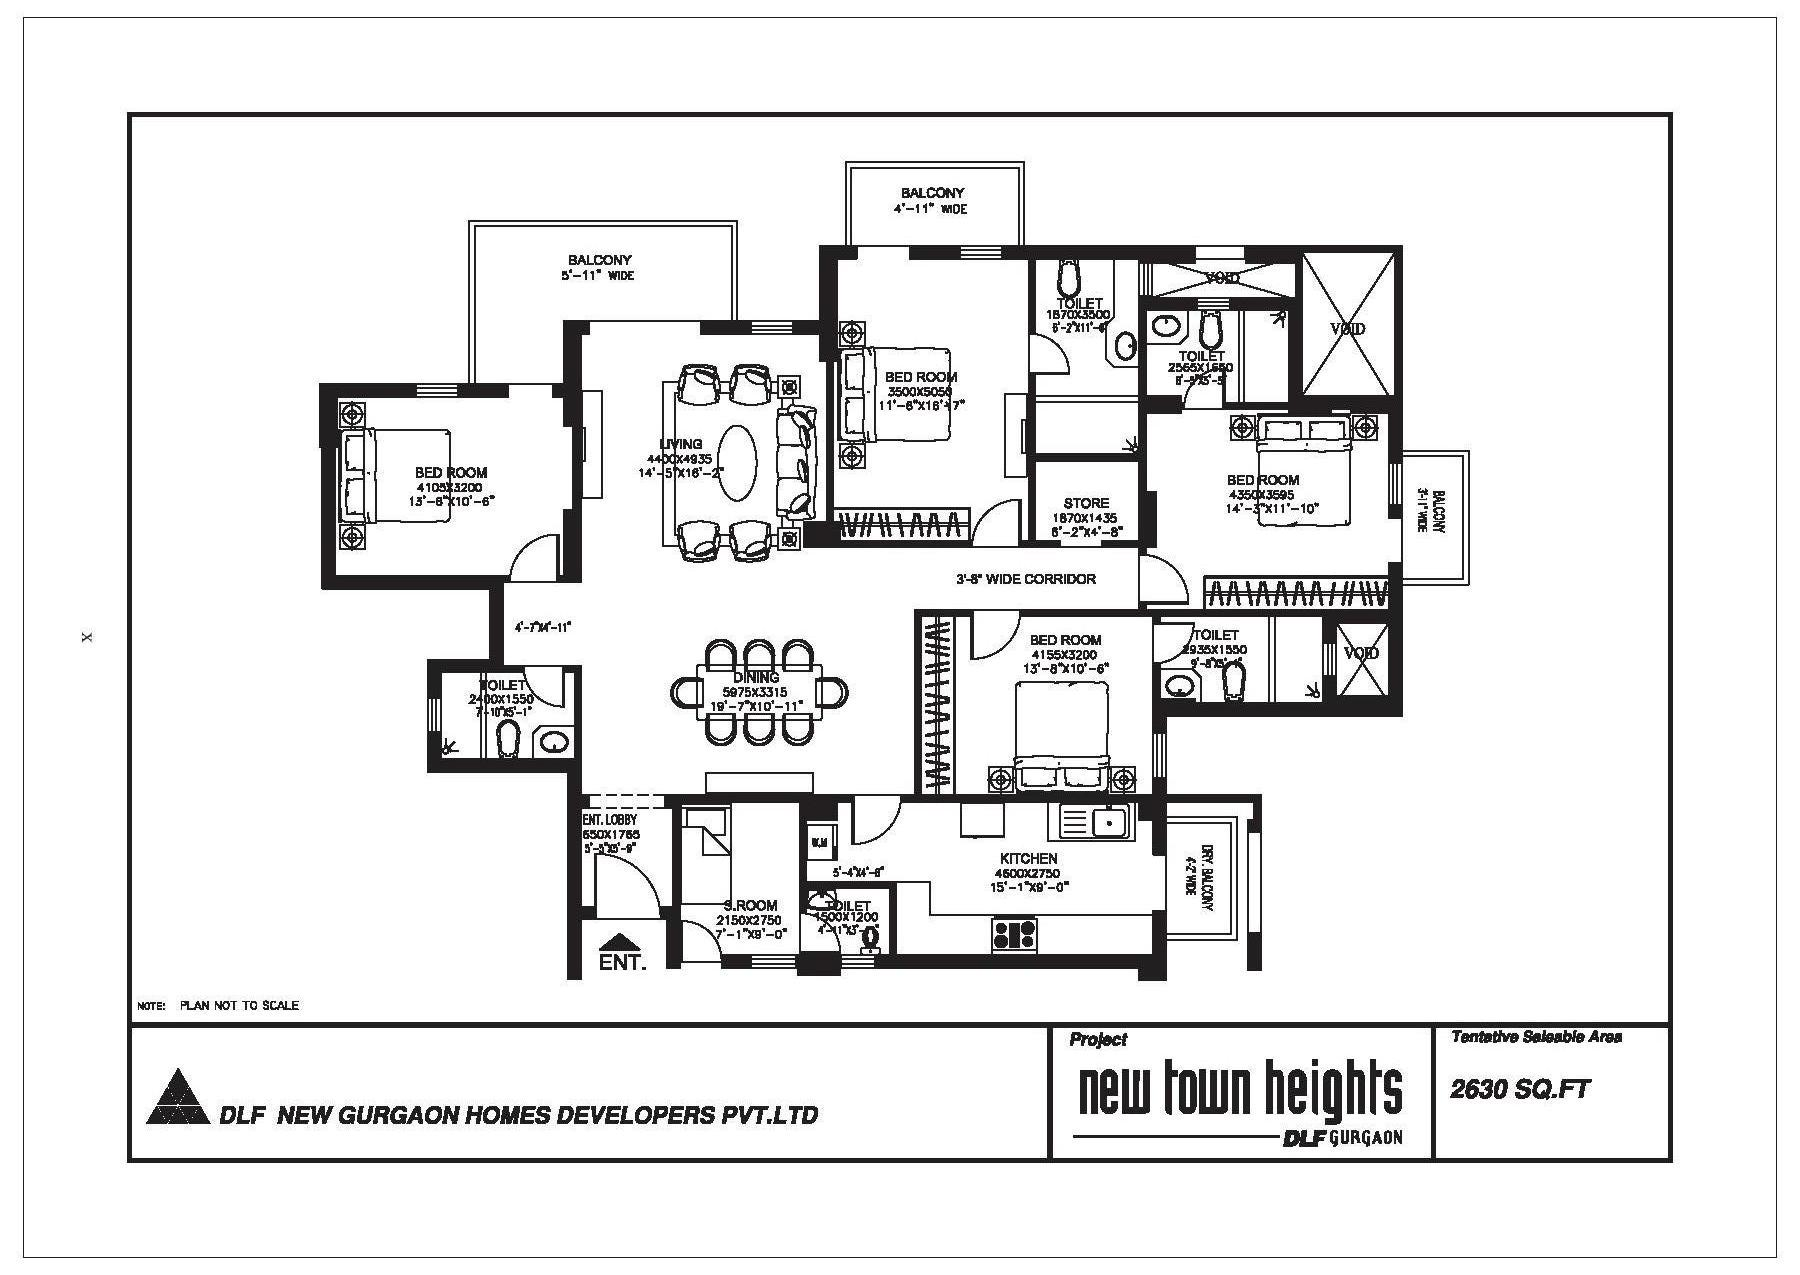 Dlf new town heights sector 86 90 91 gurgaon for Landcraft homes floor plans